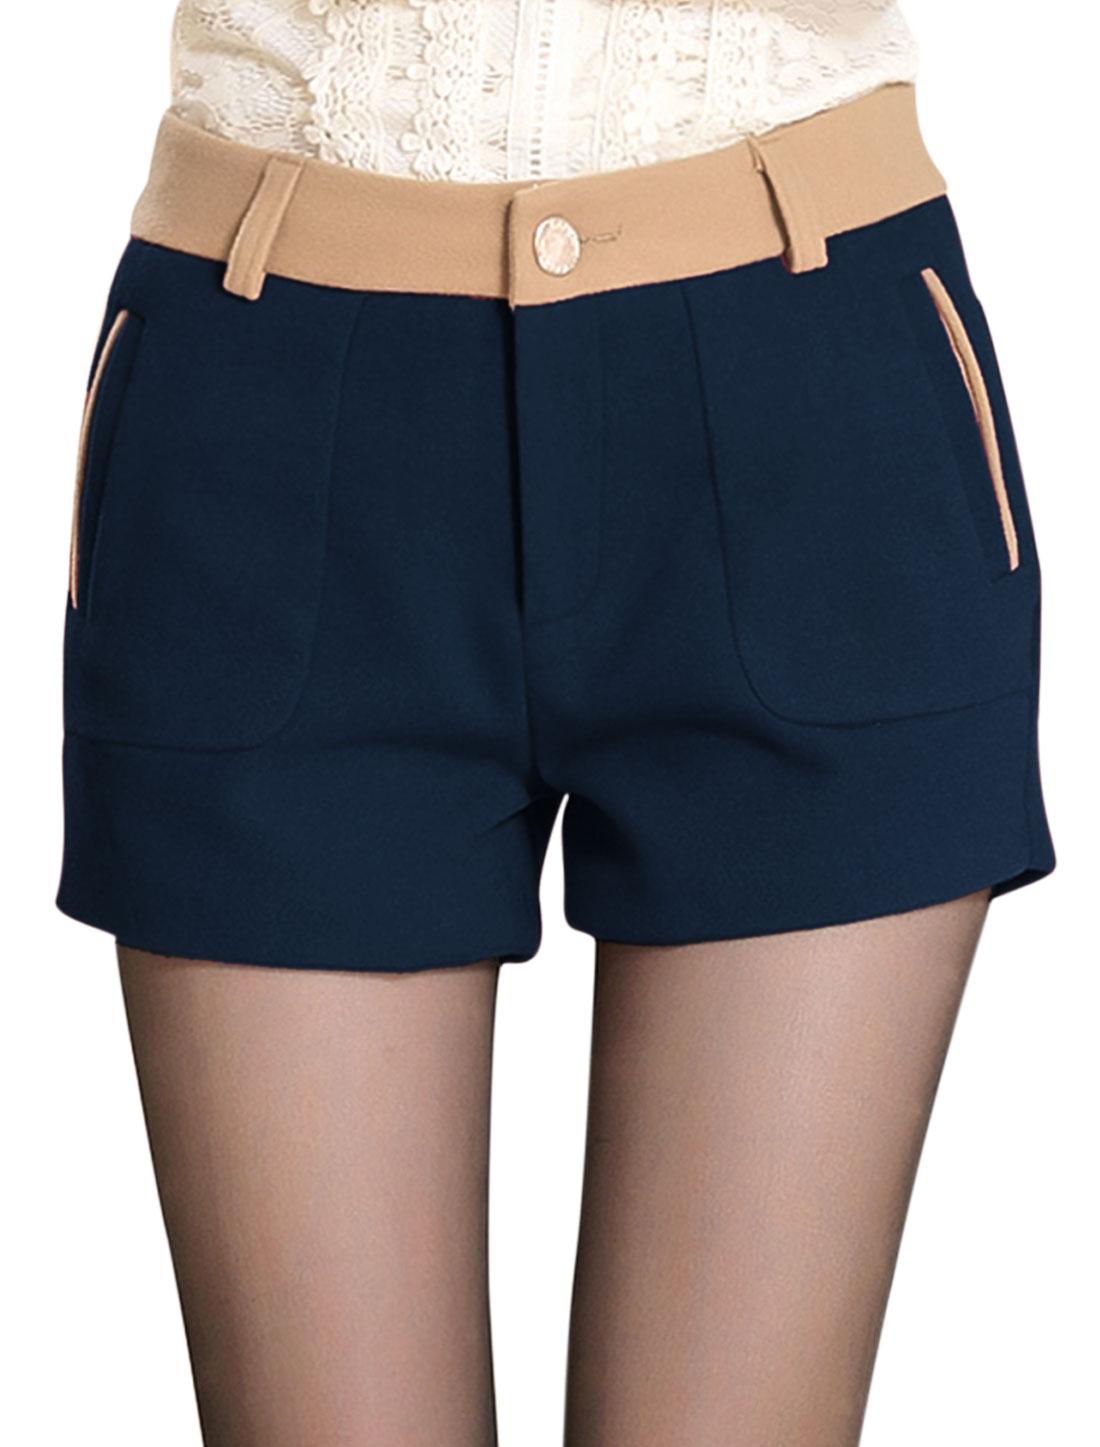 New Style Trendy Color Block Detail Casual Shorts for Lady Navy Blue M